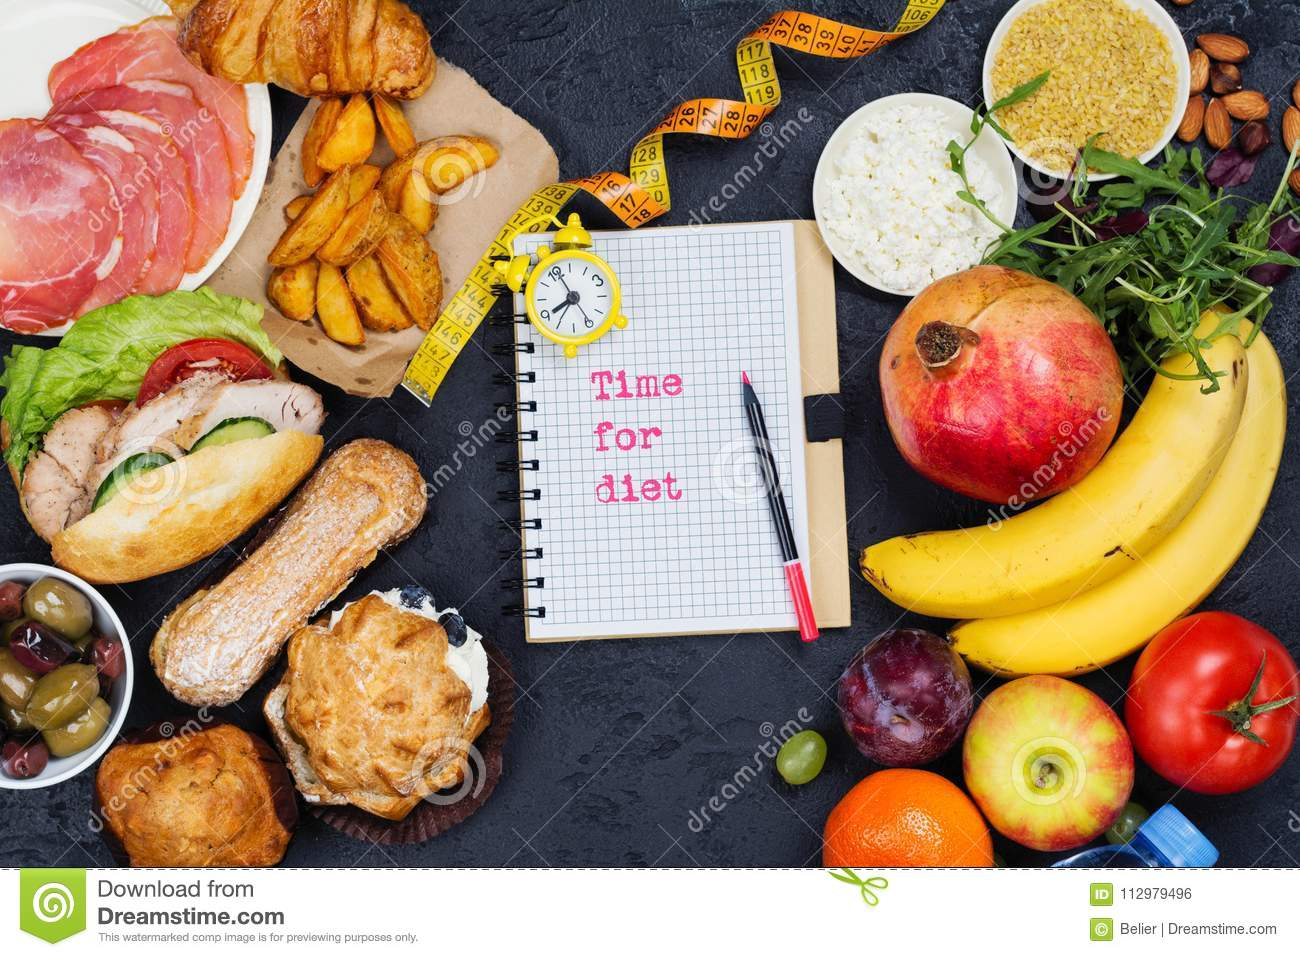 Time for diet. 5:2 fasting diet concept